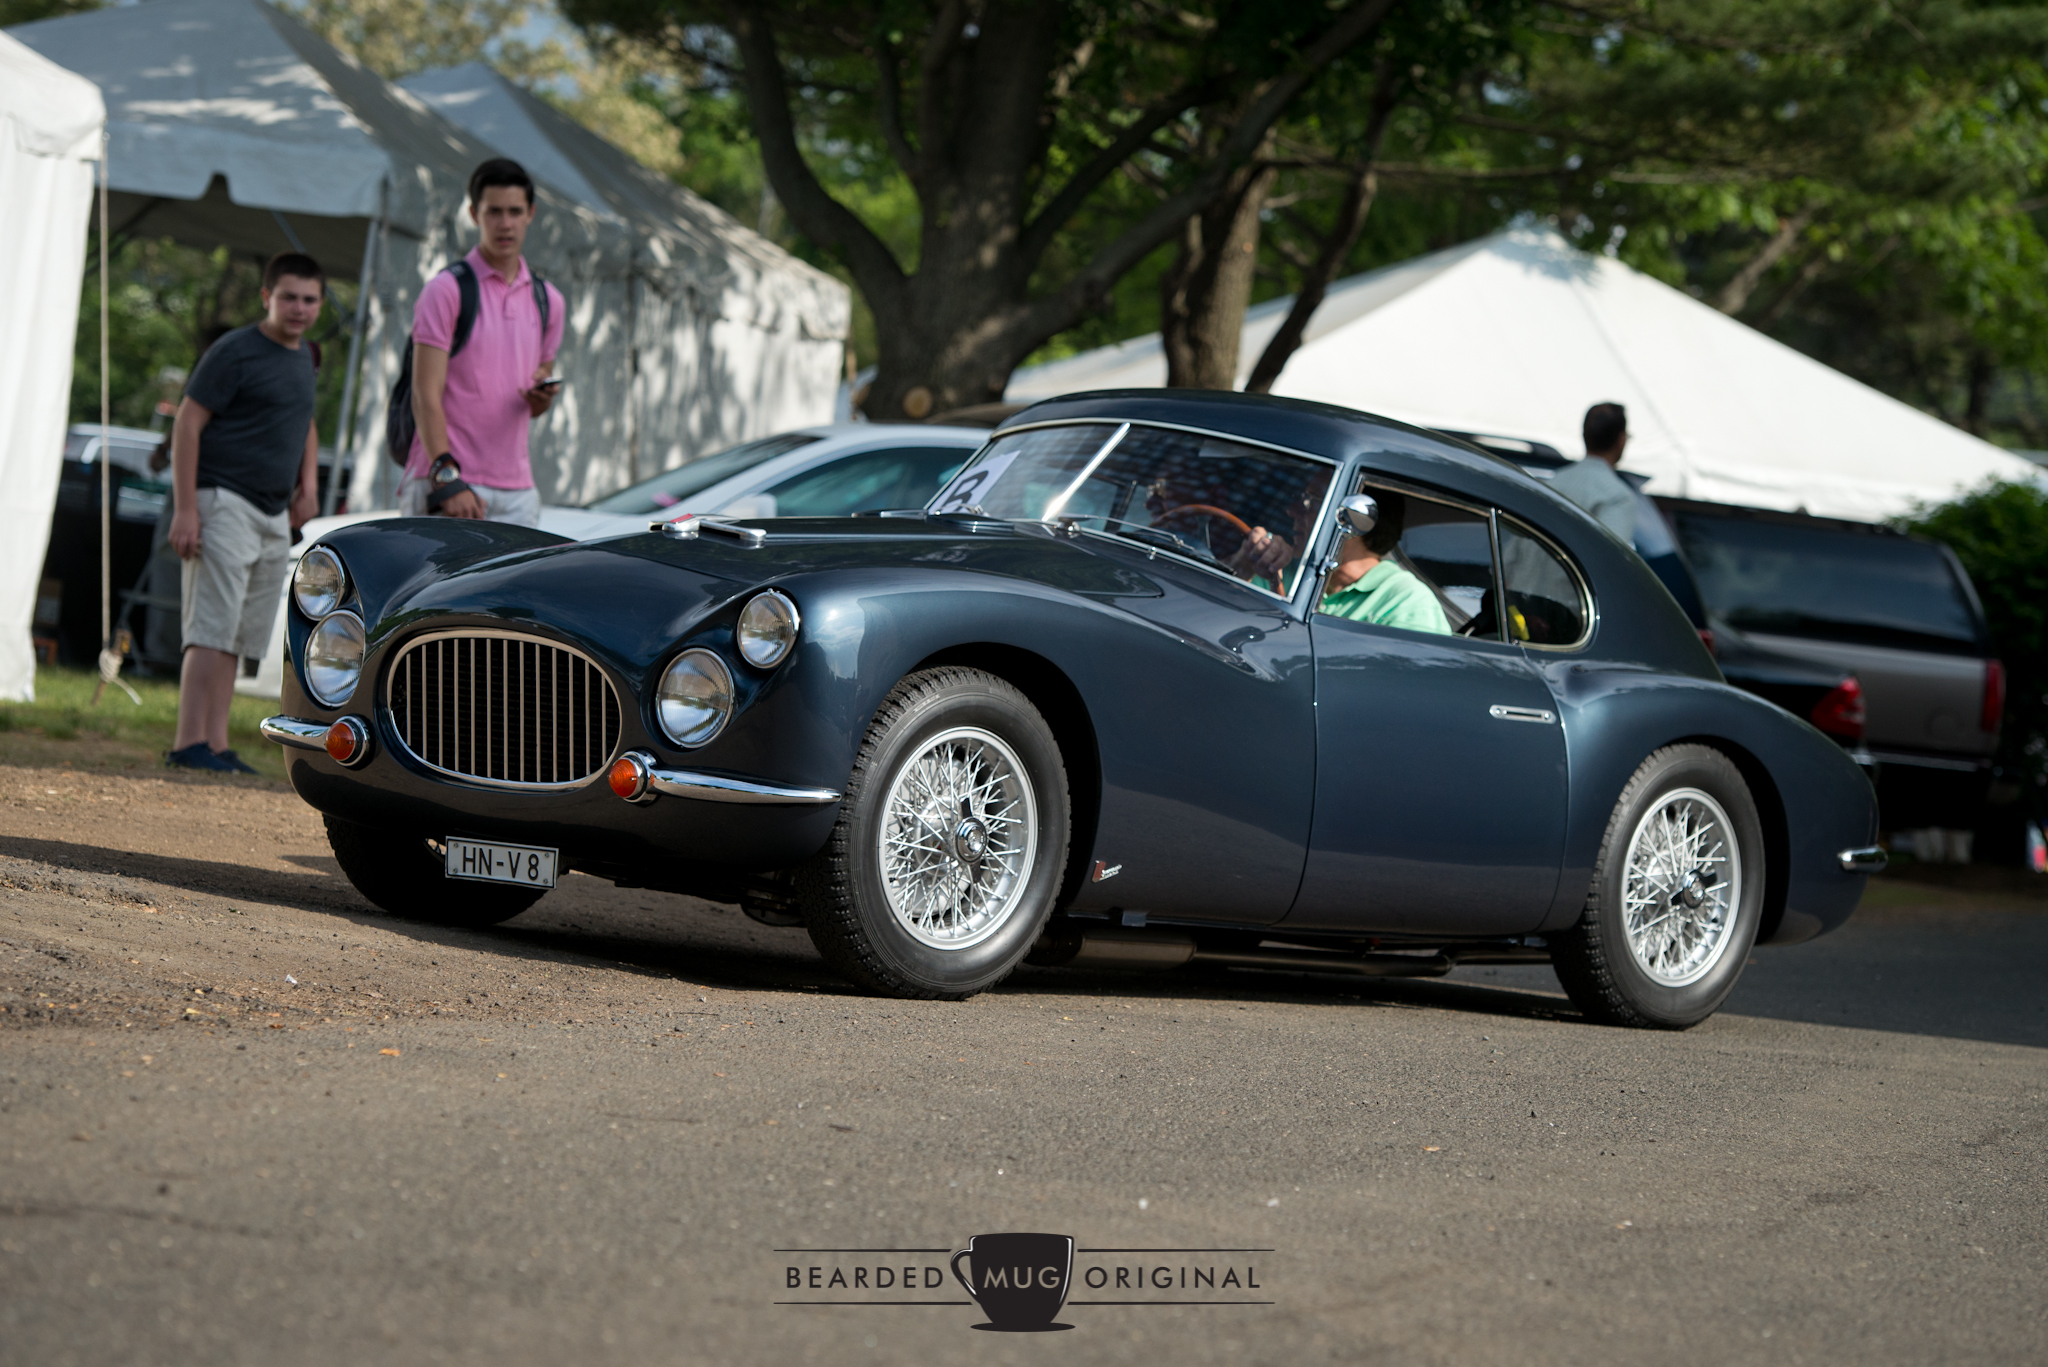 "According to my research, this 1953 Fiat 8V 'Otto Vu"" Berlinetta is 1 of 34 and sports a 2L V8 under that sculpted hood. The bodywork was done in-house, as opposed to being outsourced to  carrozzerias  such as Pinin Farina or Zagato."